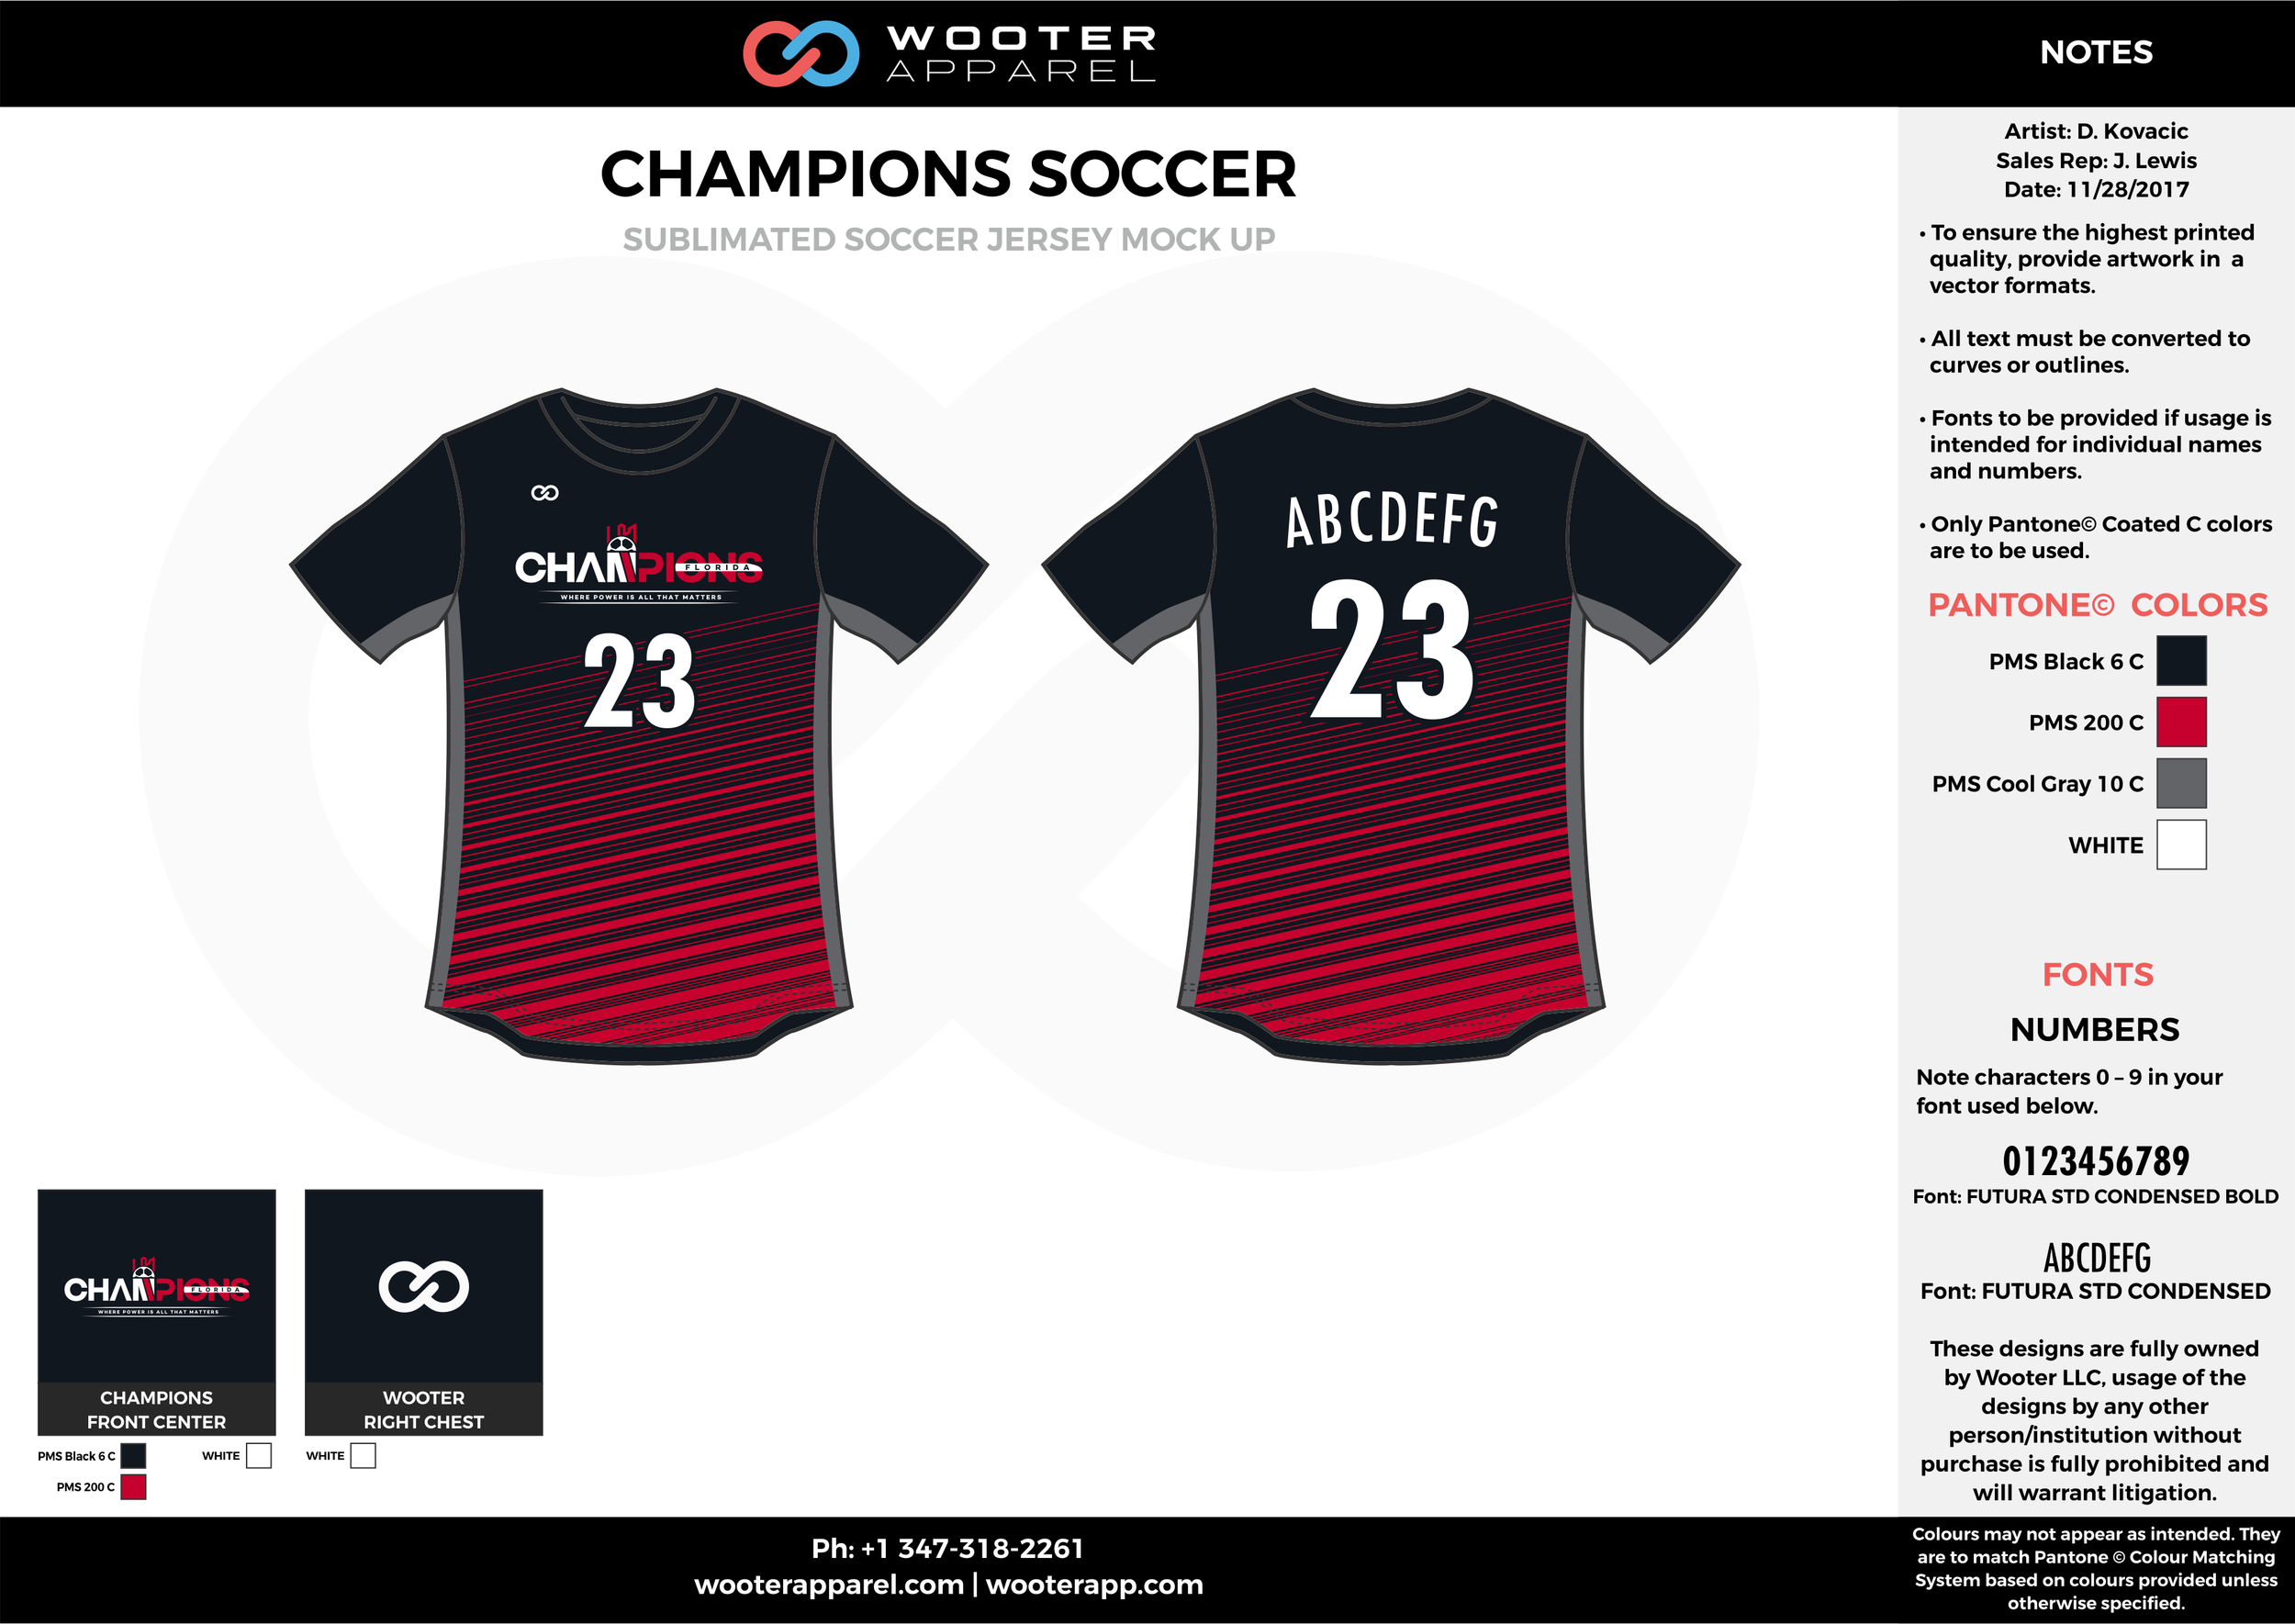 CHAMPIONS red gray black custom sublimated soccer uniform jersey shirt